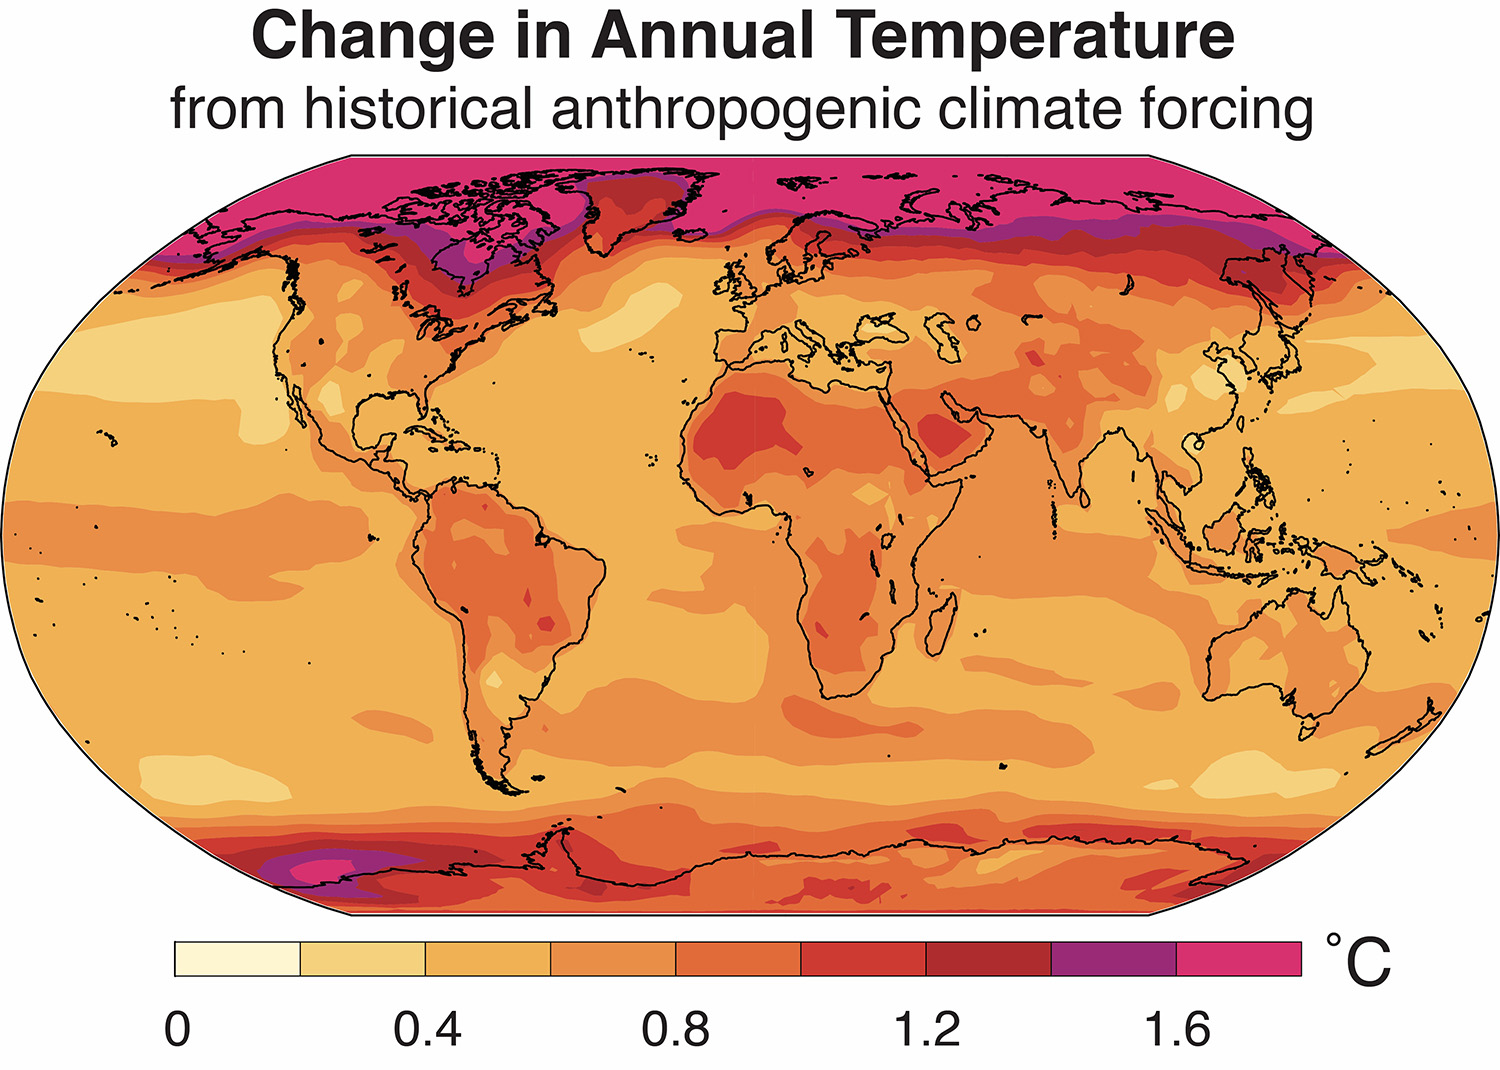 Anthropogenic climate change began to accelerate in the mid-19th century as fossil fuel use increased. (Stanford University)